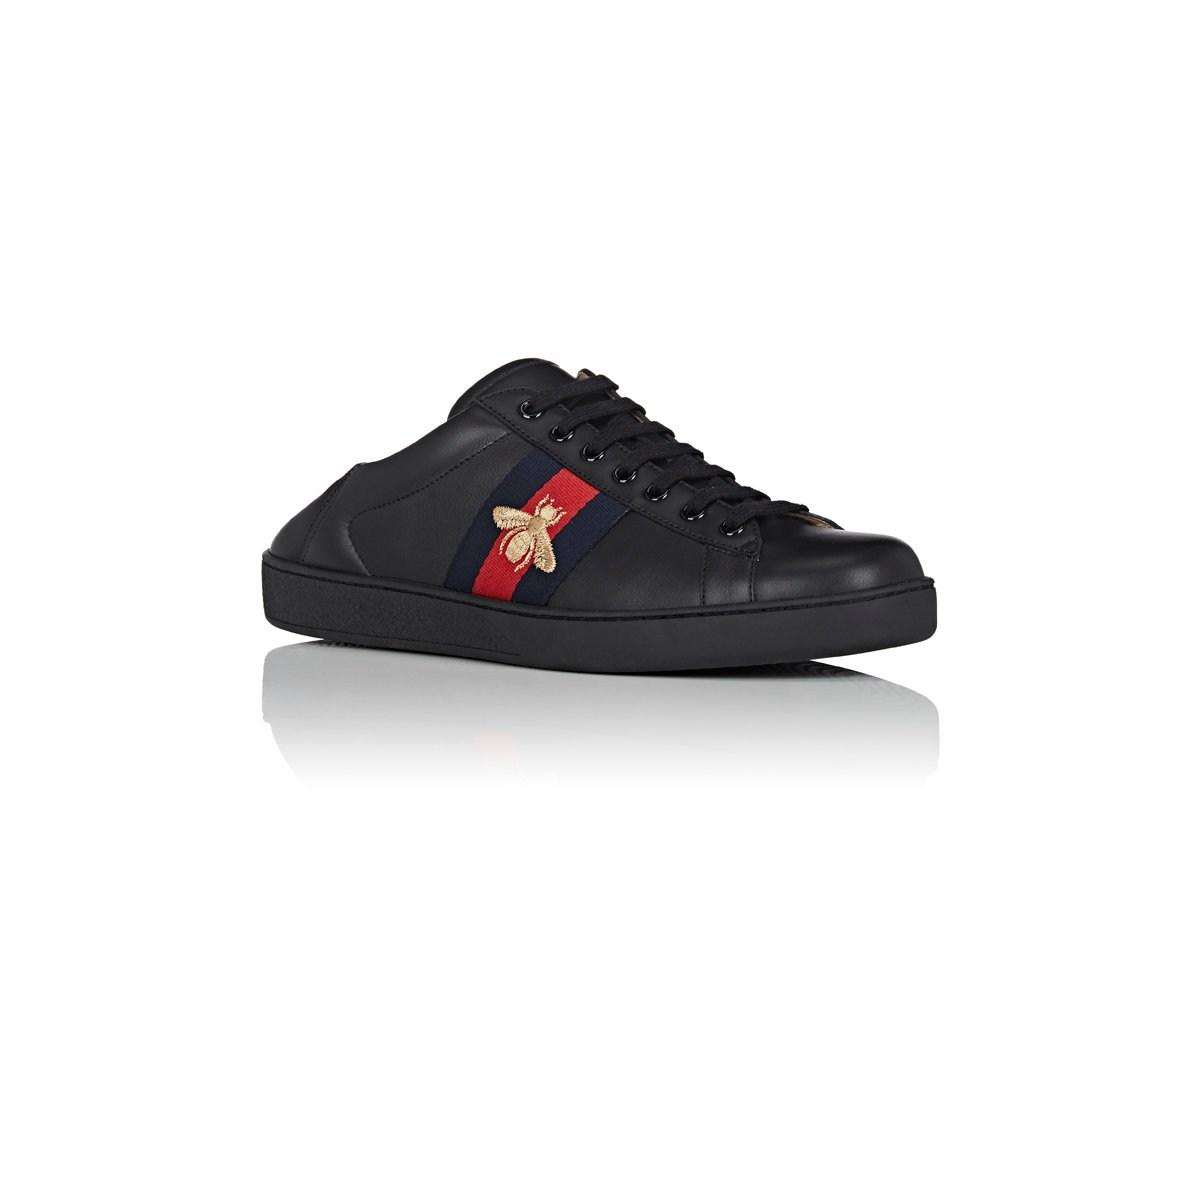 ee576802c22 Gucci - Black New Ace Leather Sneakers for Men - Lyst. View fullscreen